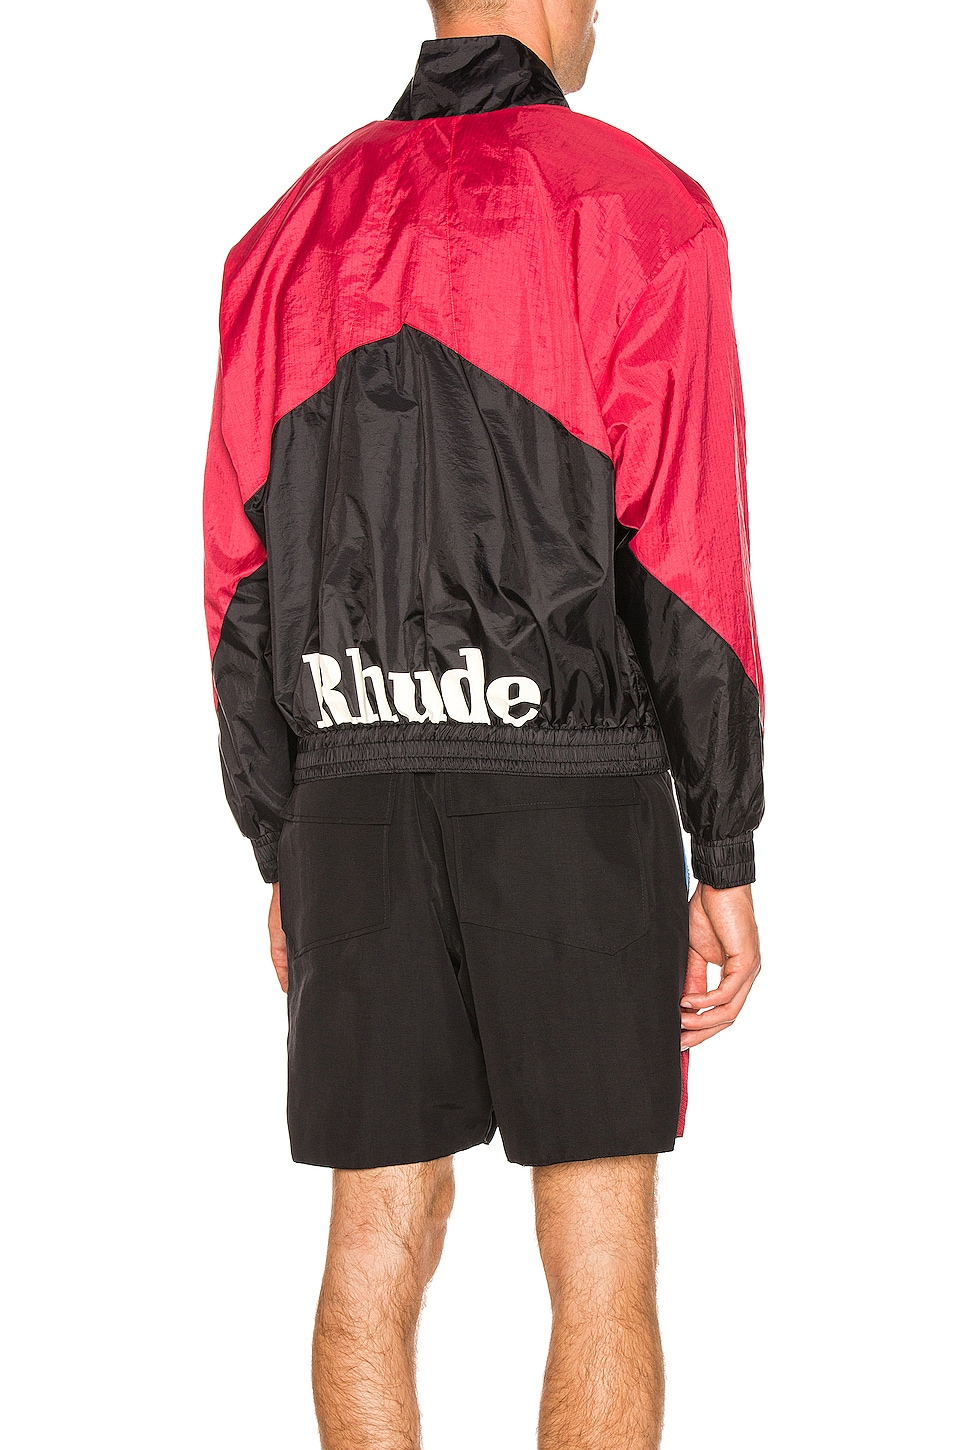 Rhude Flight Jacket in Black & Red